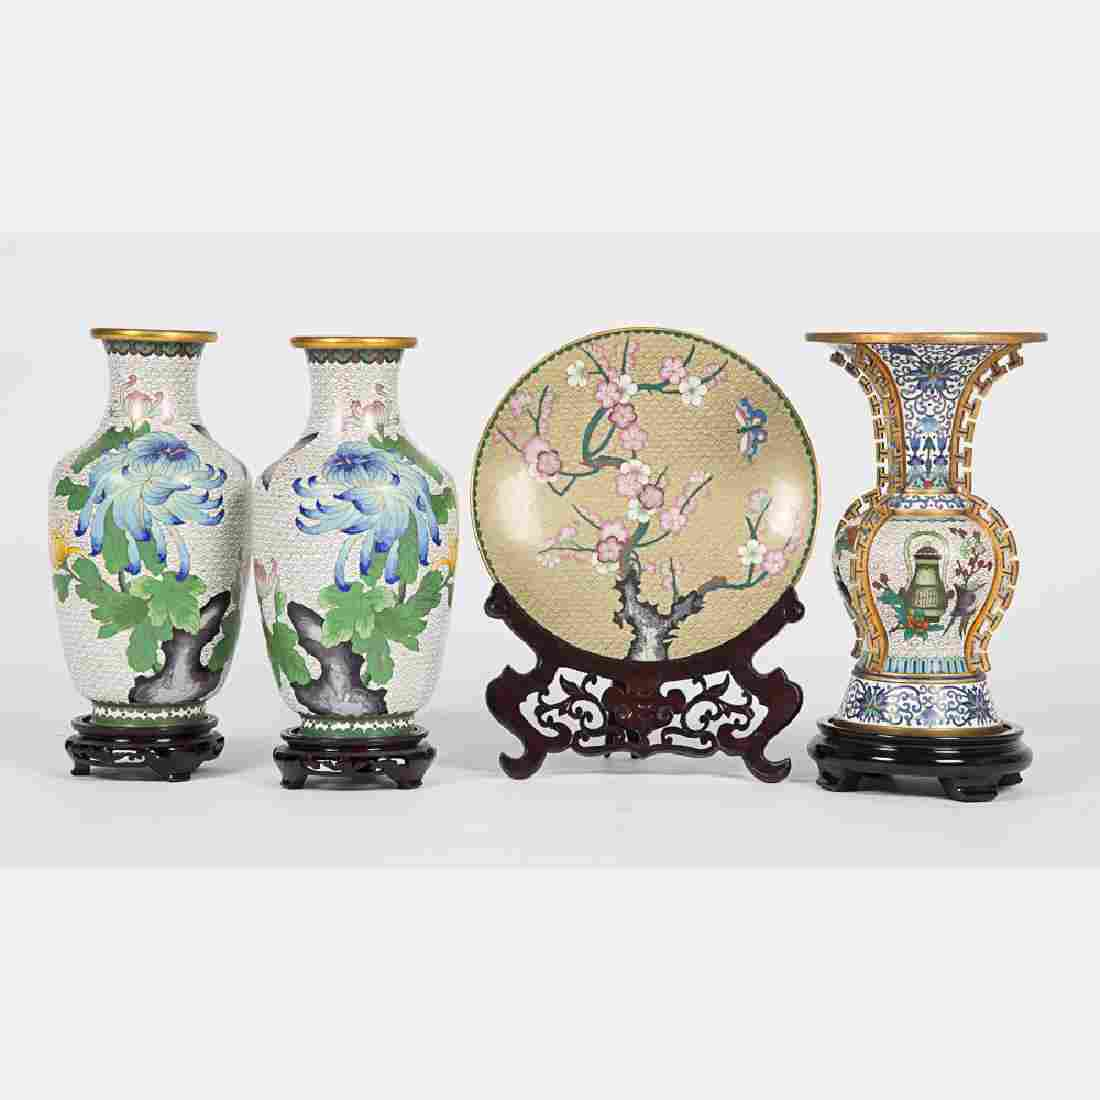 A Group of Chinese Cloisonné Decorative Items, 20th